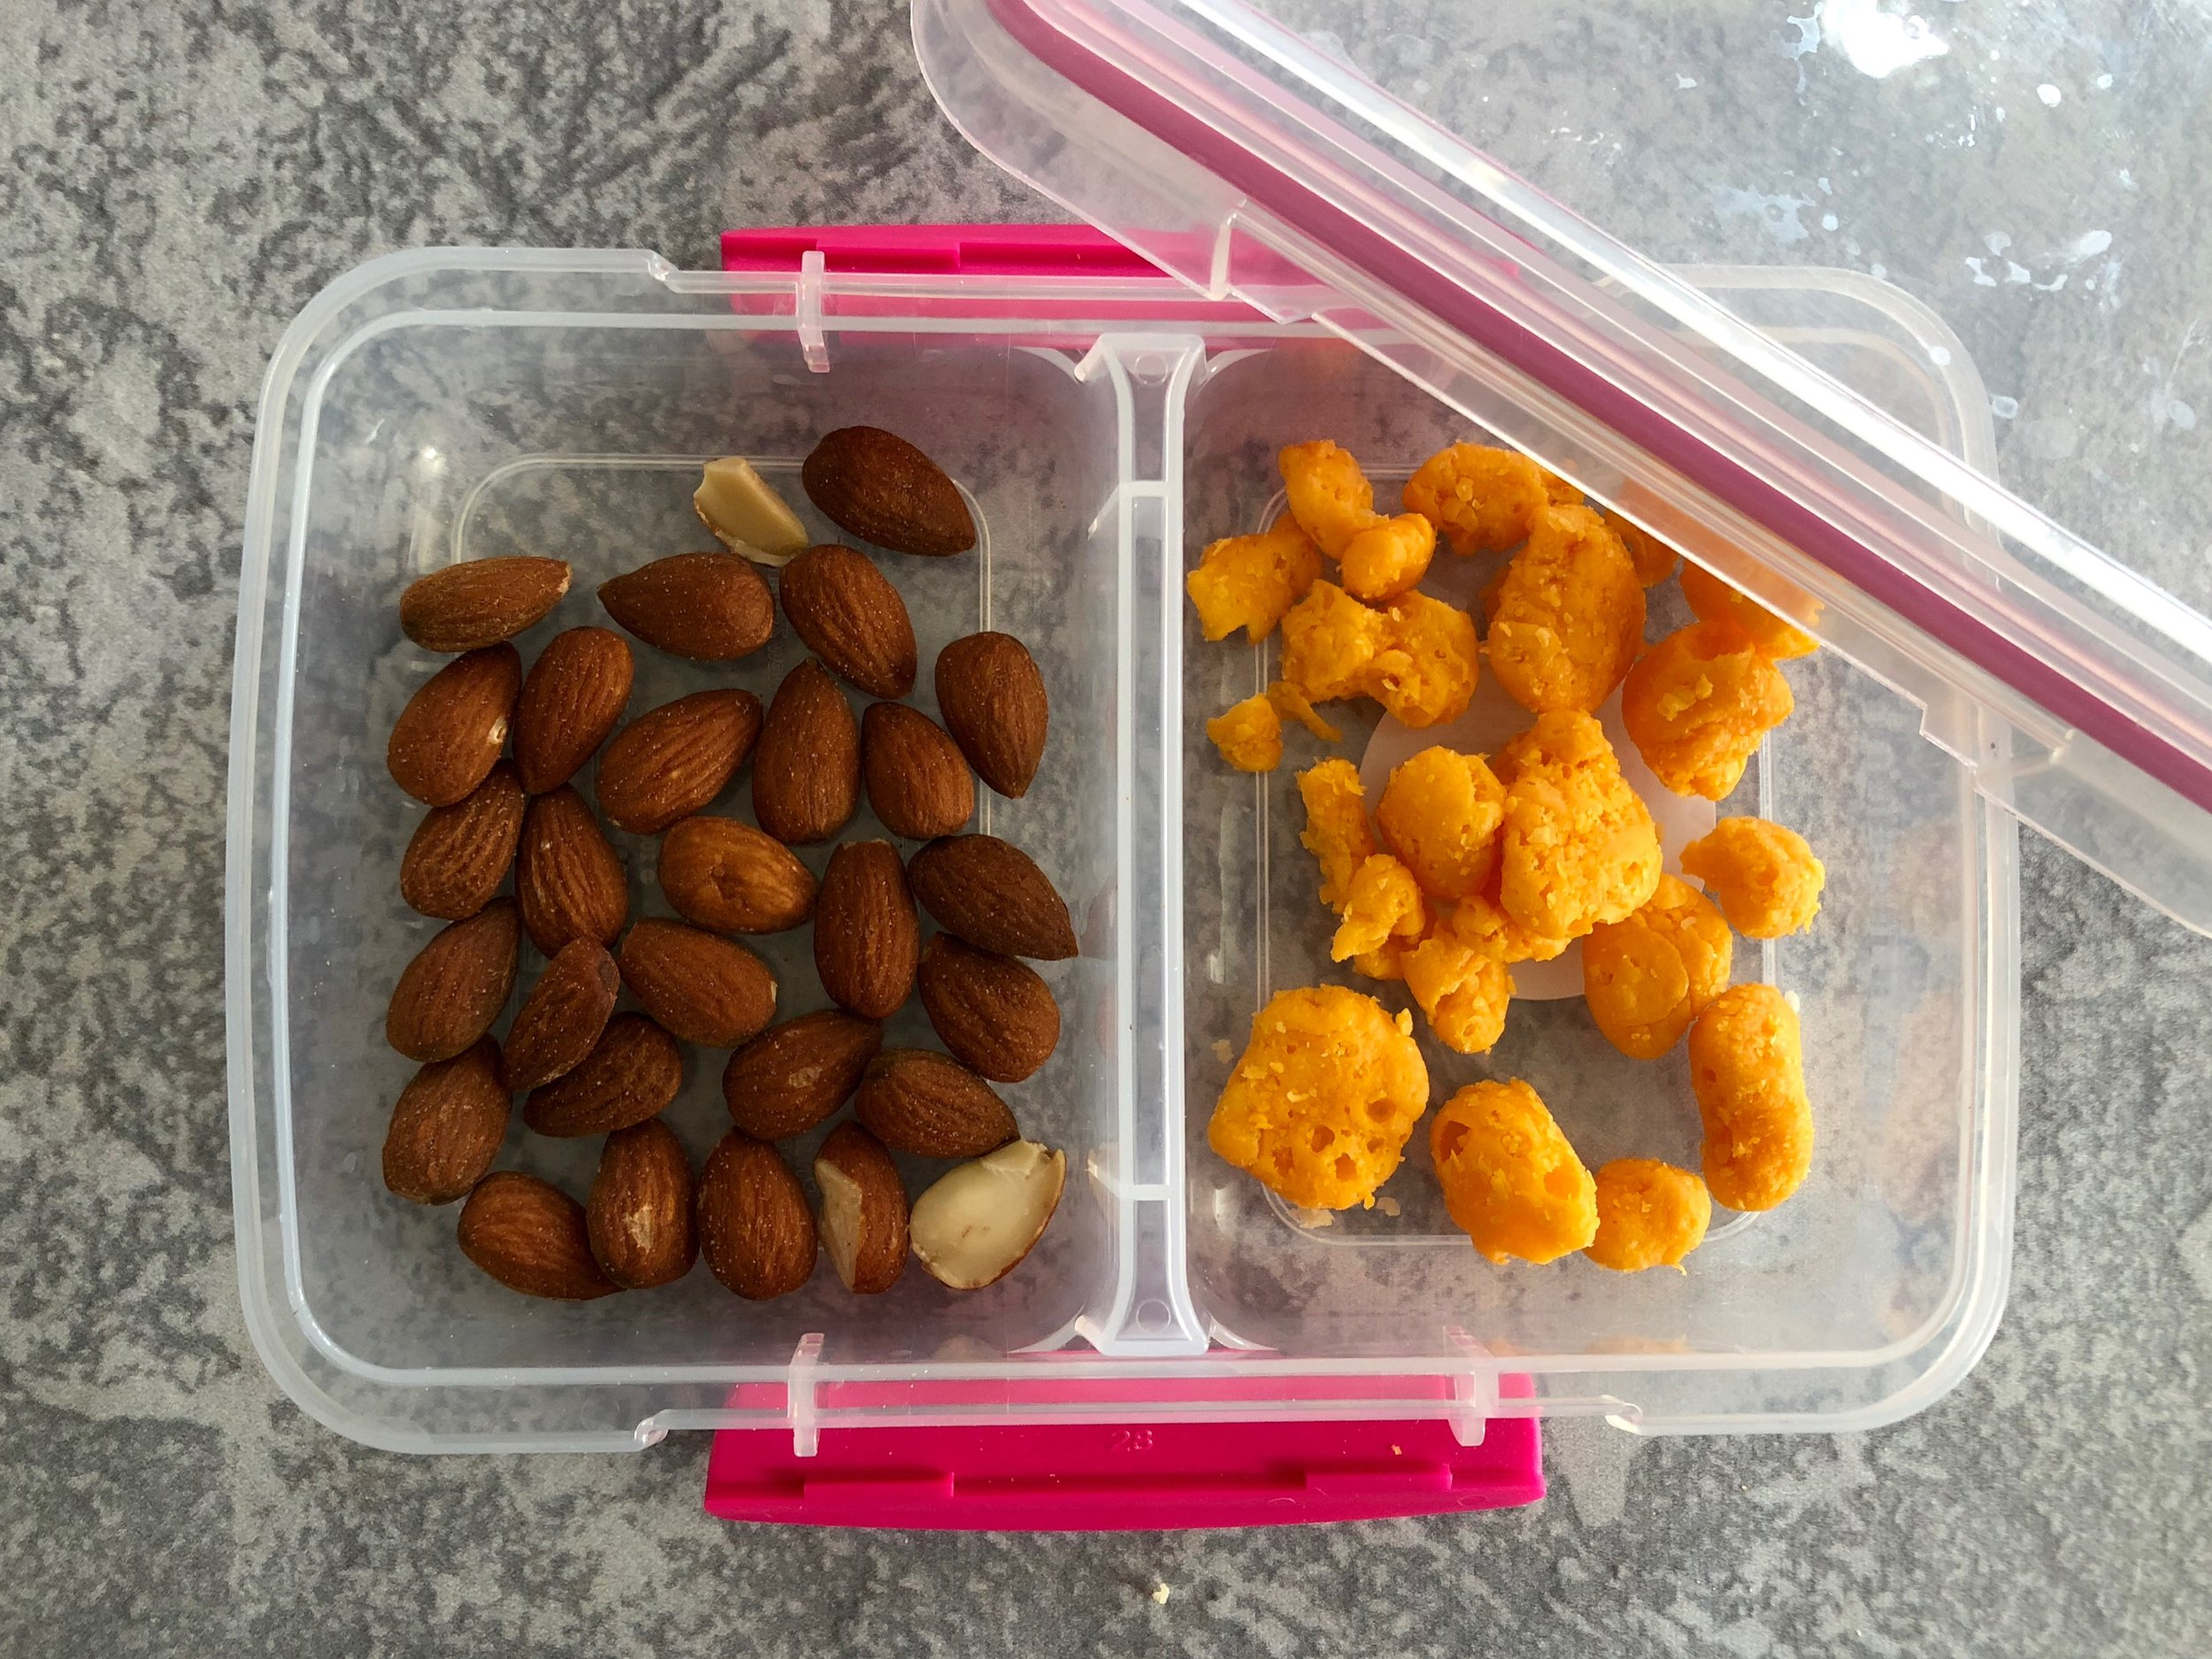 Snacks almonds nuts moon cheese keto and low carb lunch